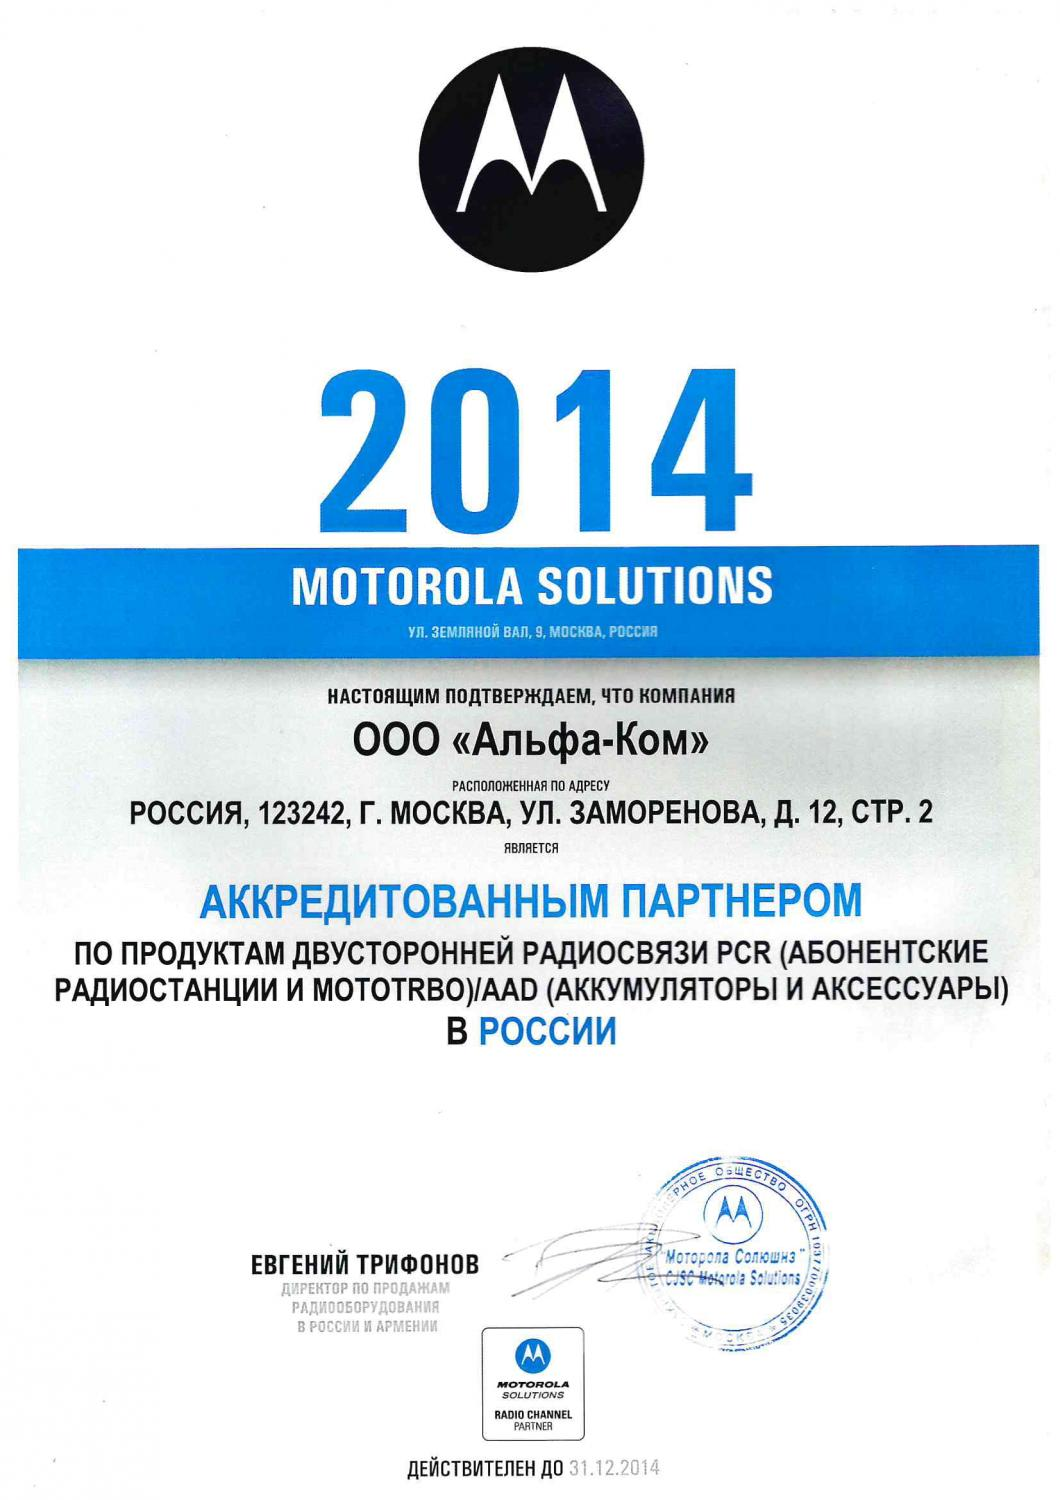 ALPHA-COM Partner Motorola Solutions 2014